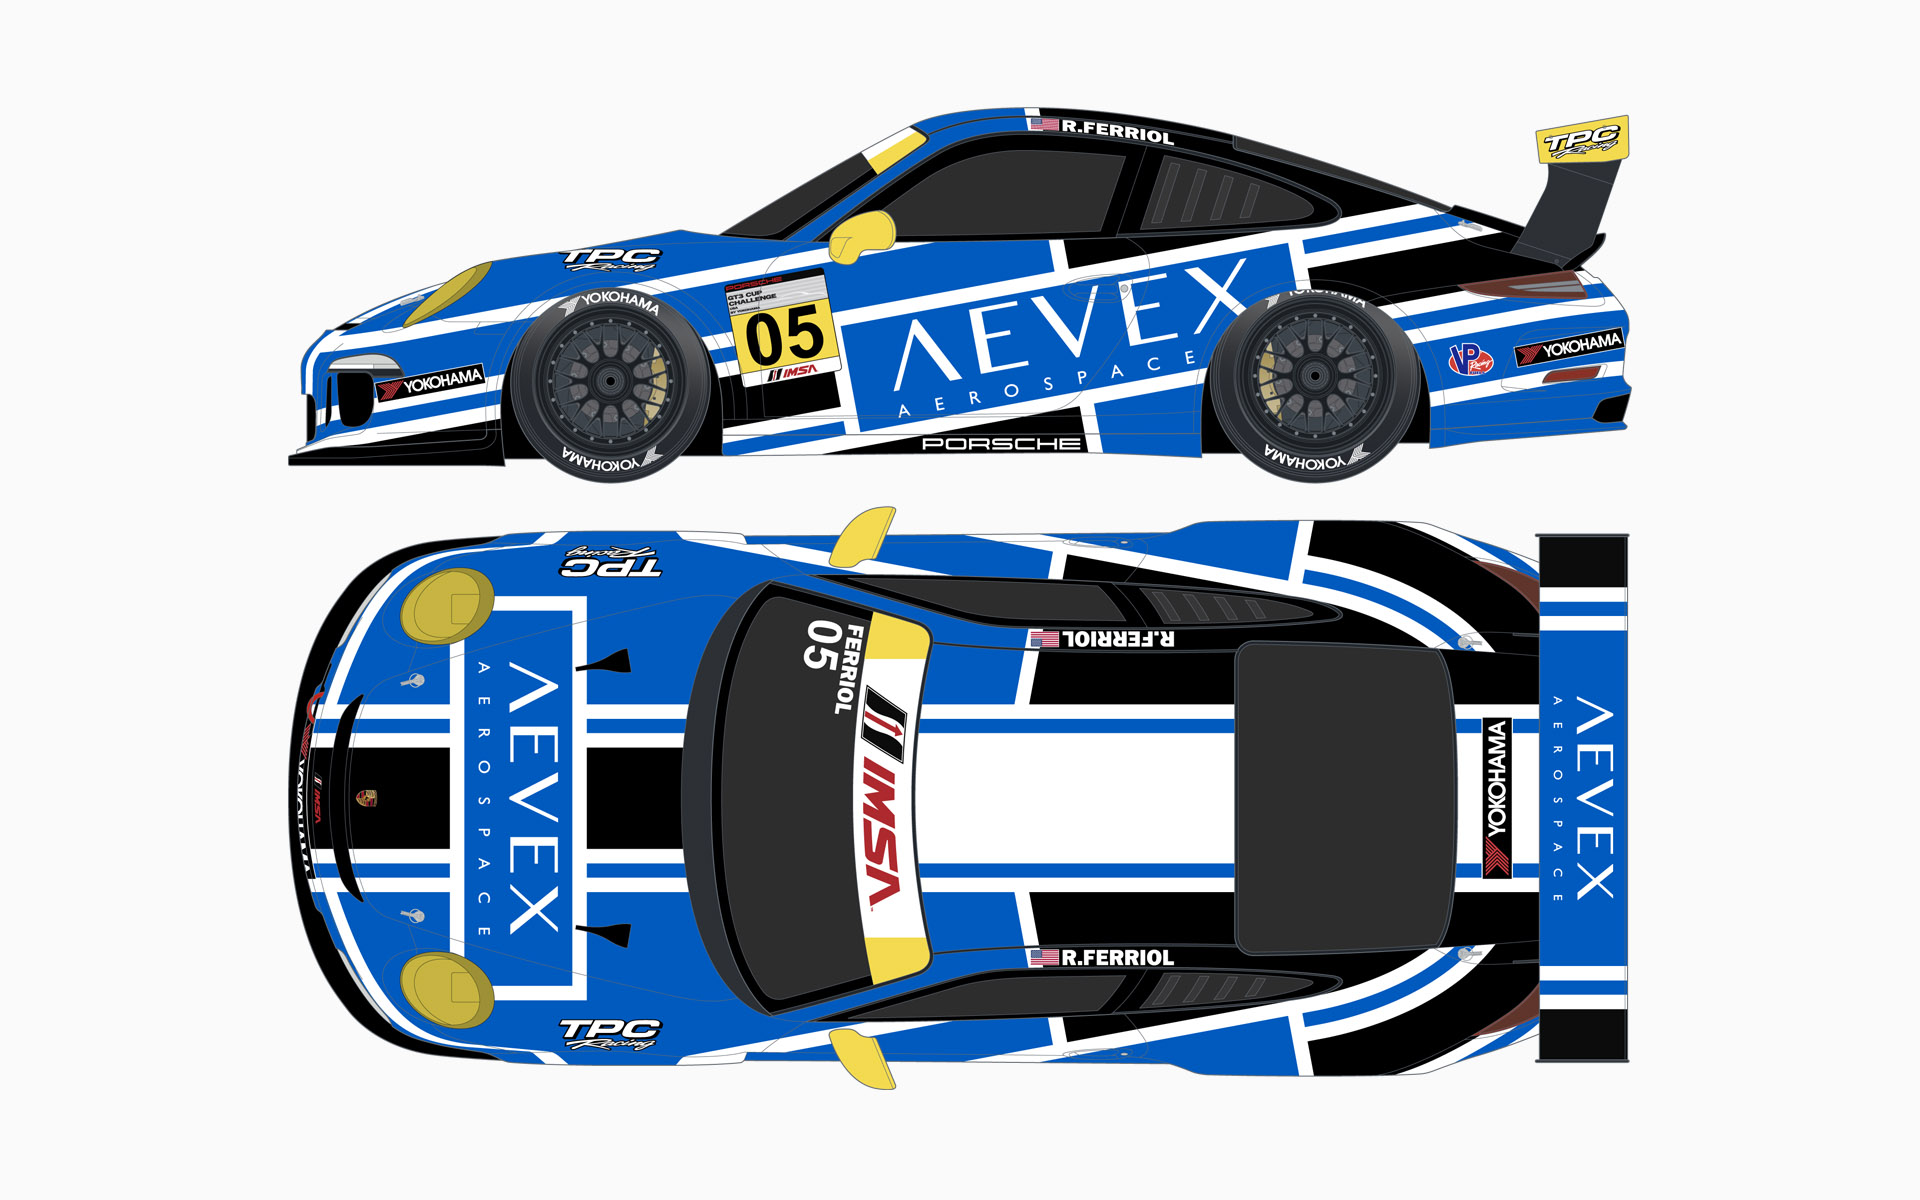 TPC Racing Aevex Aerospace Porsche 911 GT3 Cup Livery Elevations